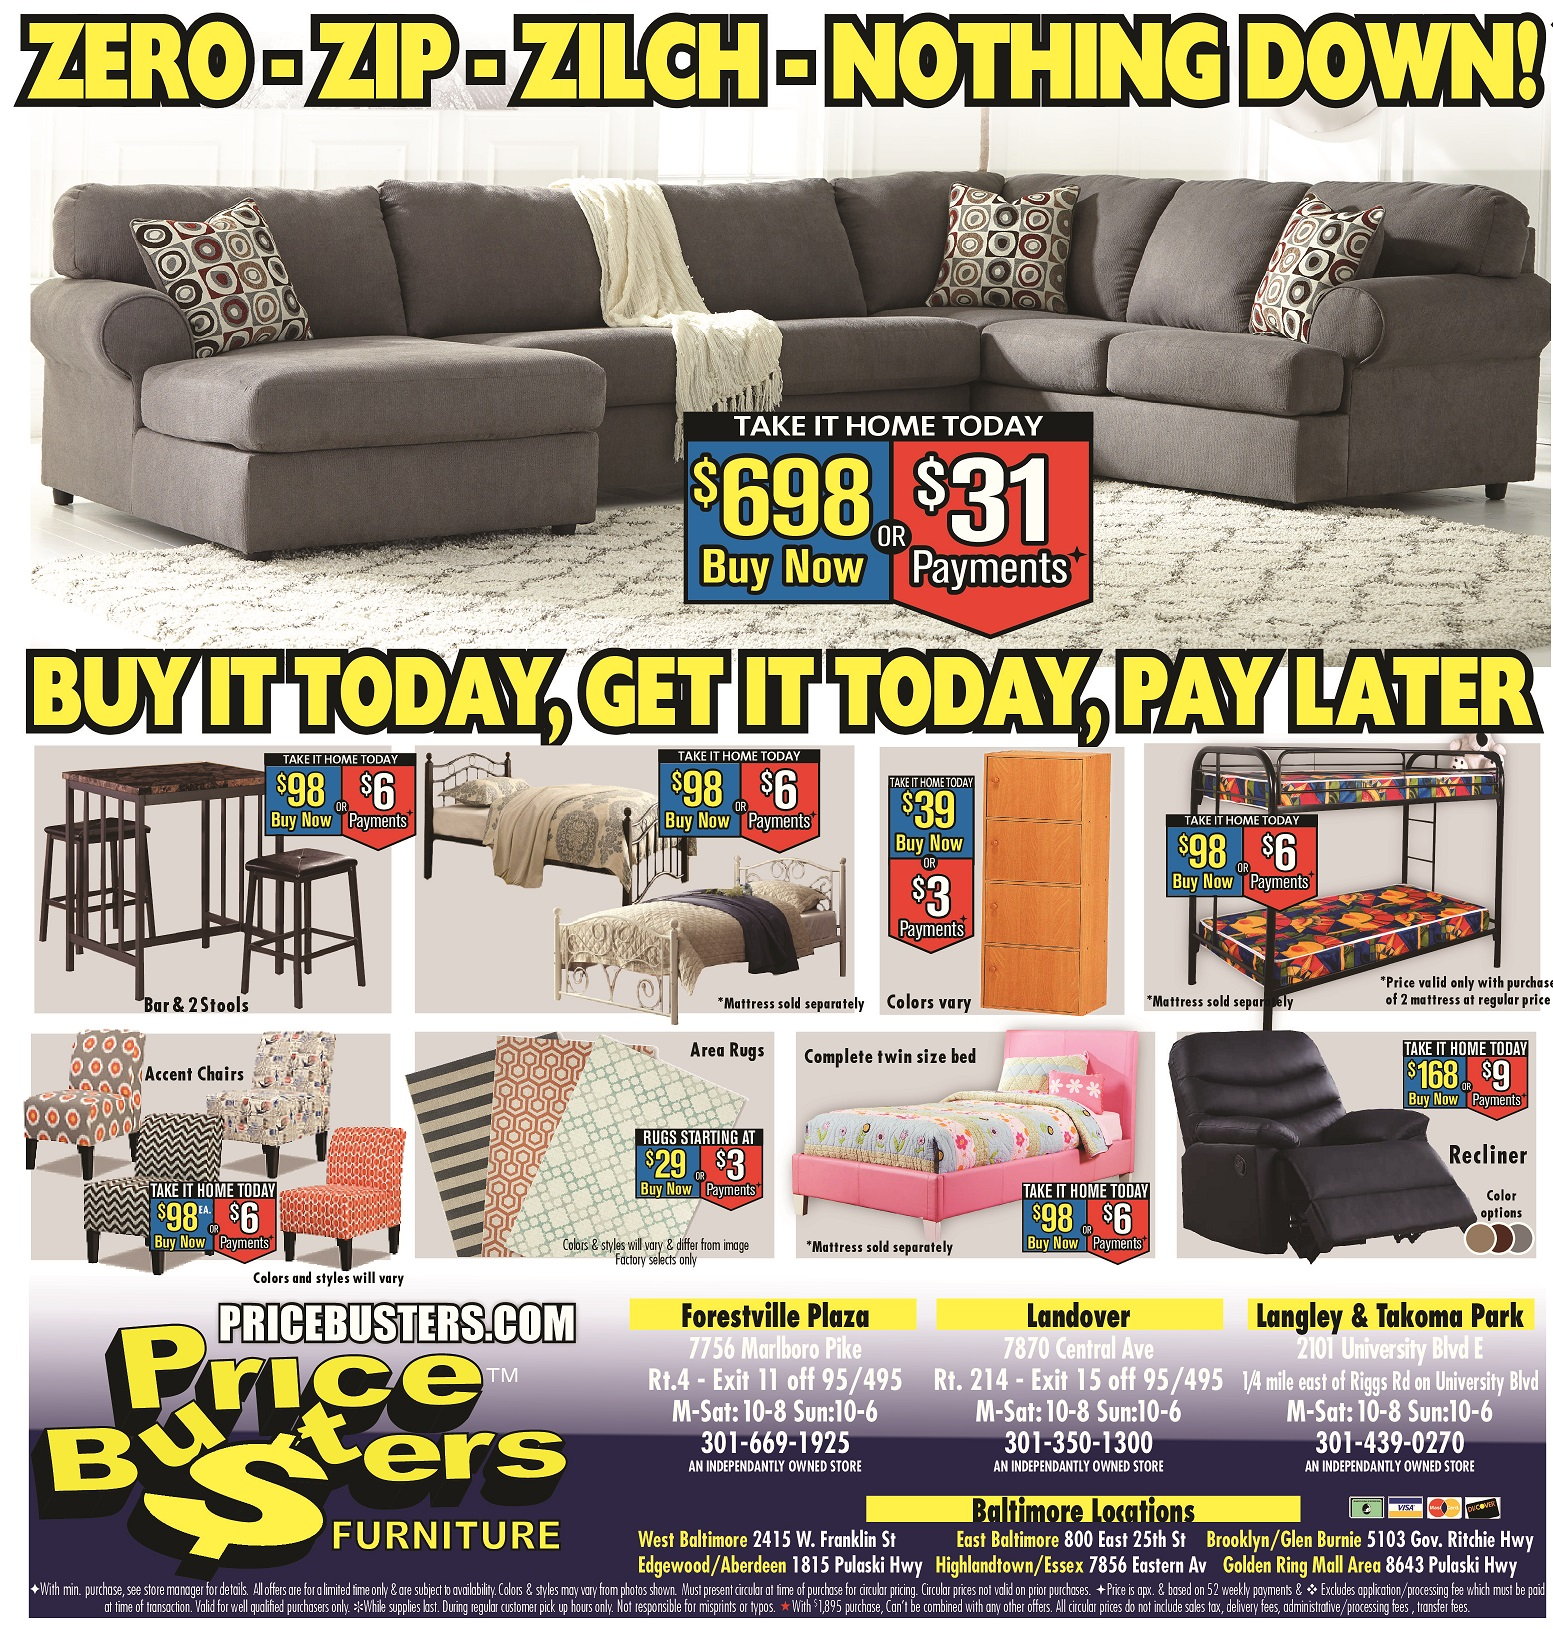 Furniture Stores Prices: Price Busters Discount Furniture, Rosedale Maryland (MD